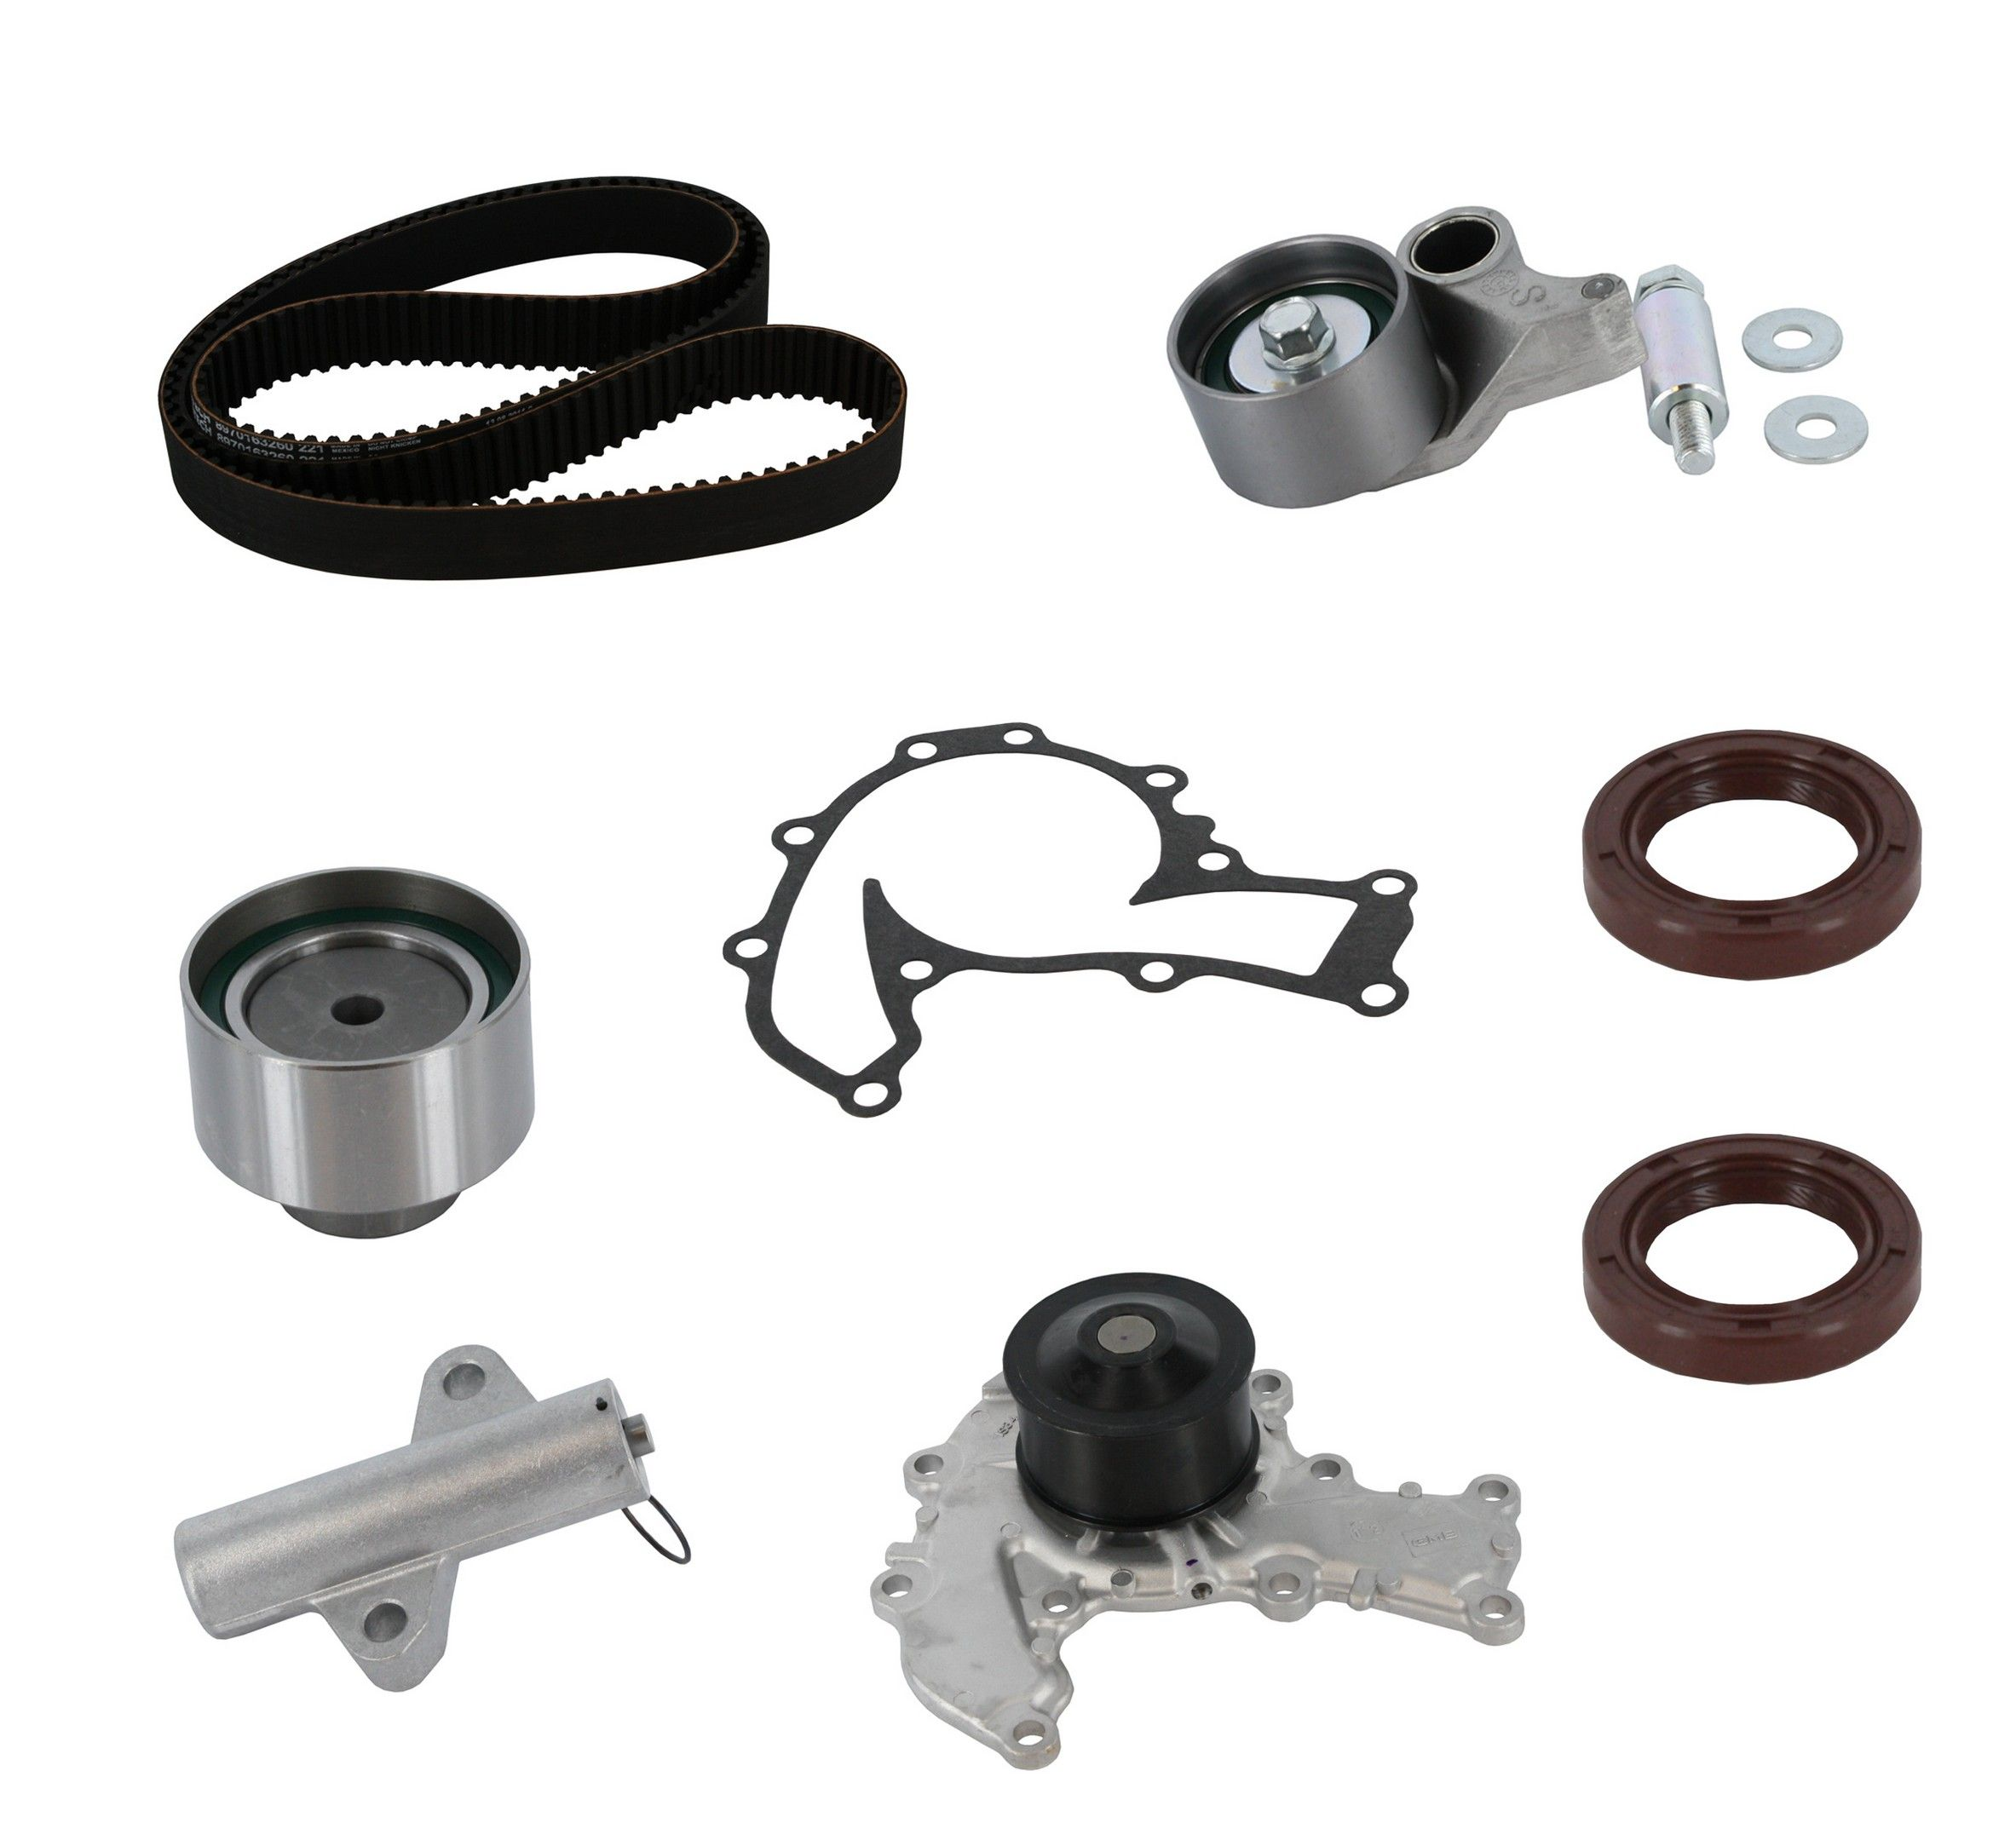 Isuzu Rodeo Engine Timing Belt Kit With Water Pump Replacement 1999 Amigo 1997 6 Cyl 32l Crp Pp221lk2 Pro Series Plus Contitech Interference Eng Includes Hyd